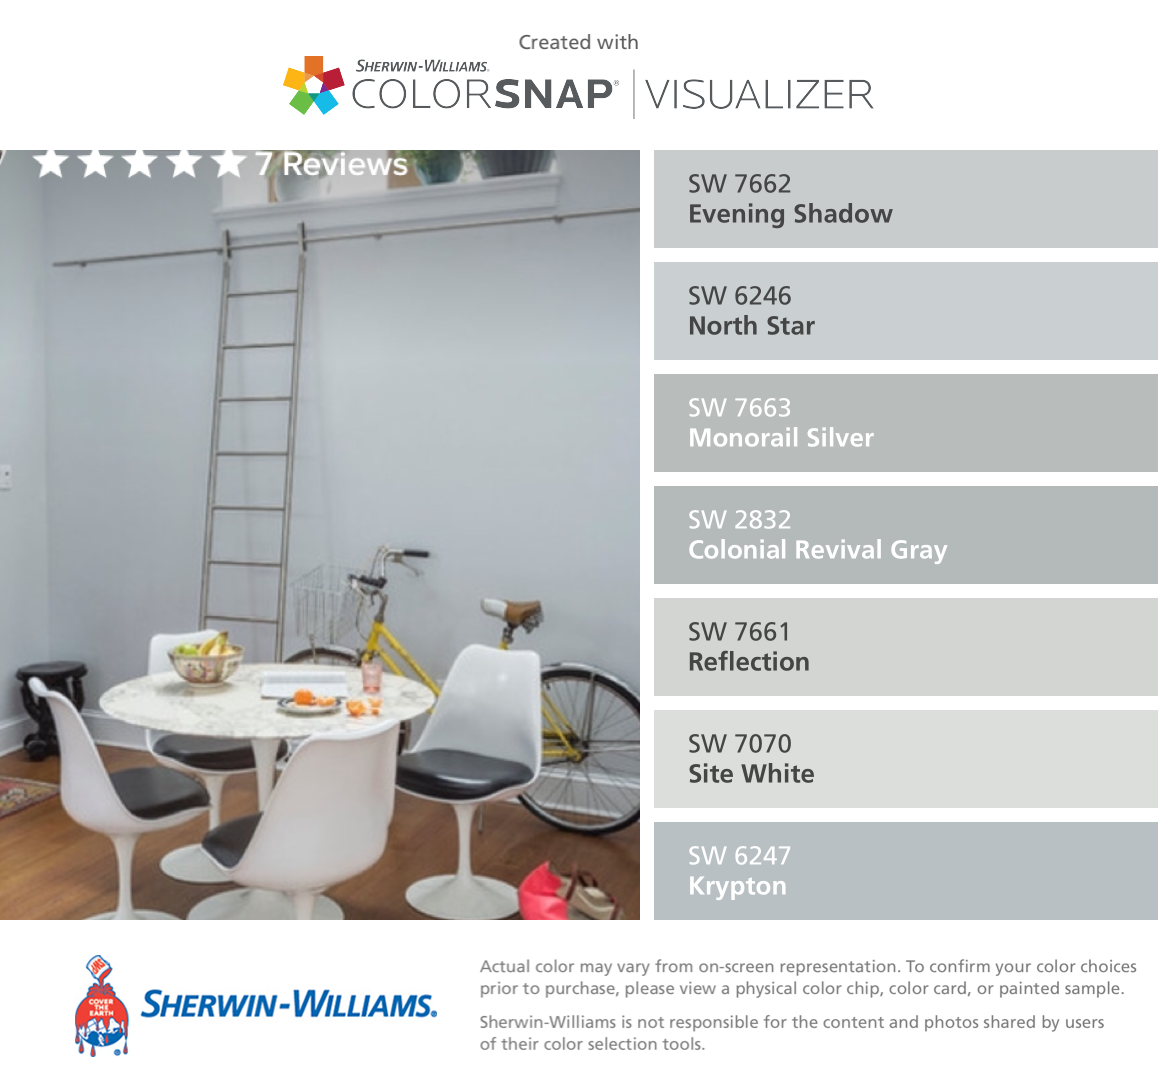 Gray Matters Sherwin Williams Sherwin Williams Evening Shadow Sw 7662 North Star Sw